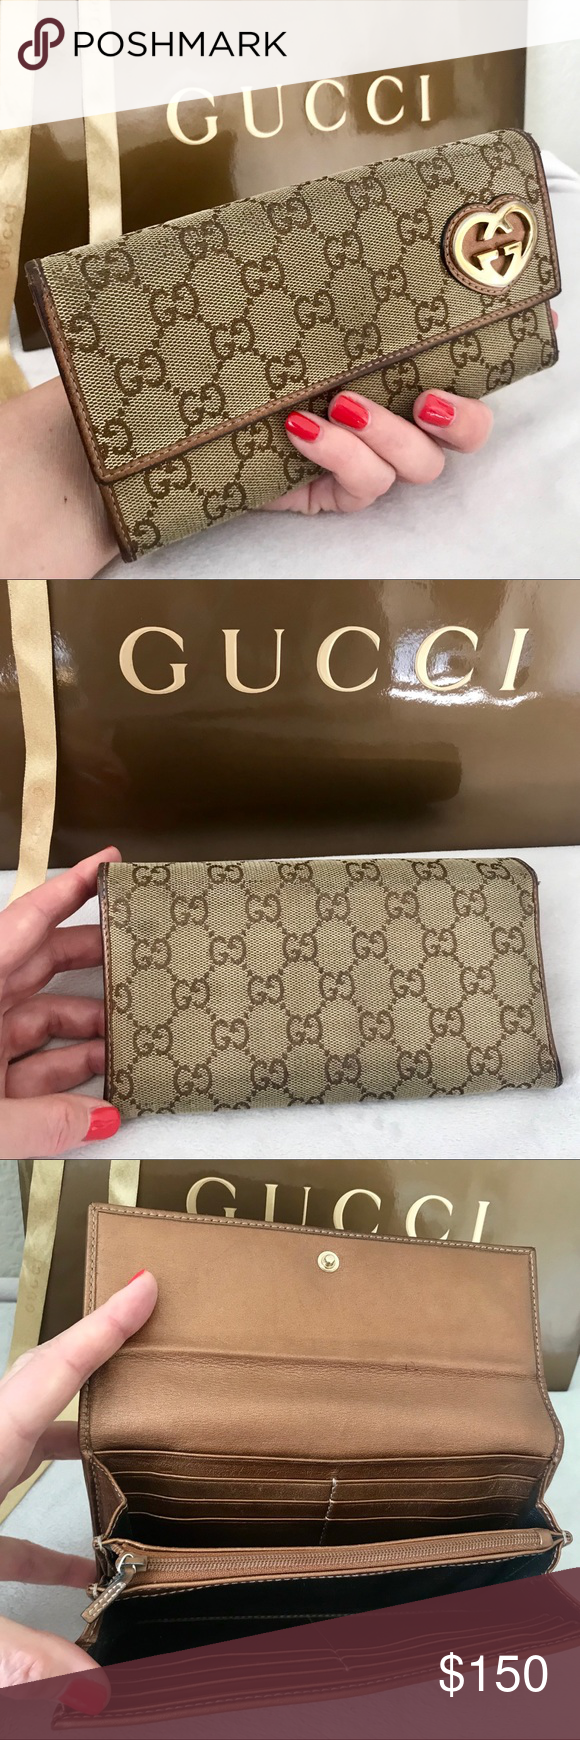 22d9ef18e4f7 GUCCI Lovely Heart GG Canvas &Leather Long Wallet Authentic Gucci GG Lovely  Heart Monogram Canvas and